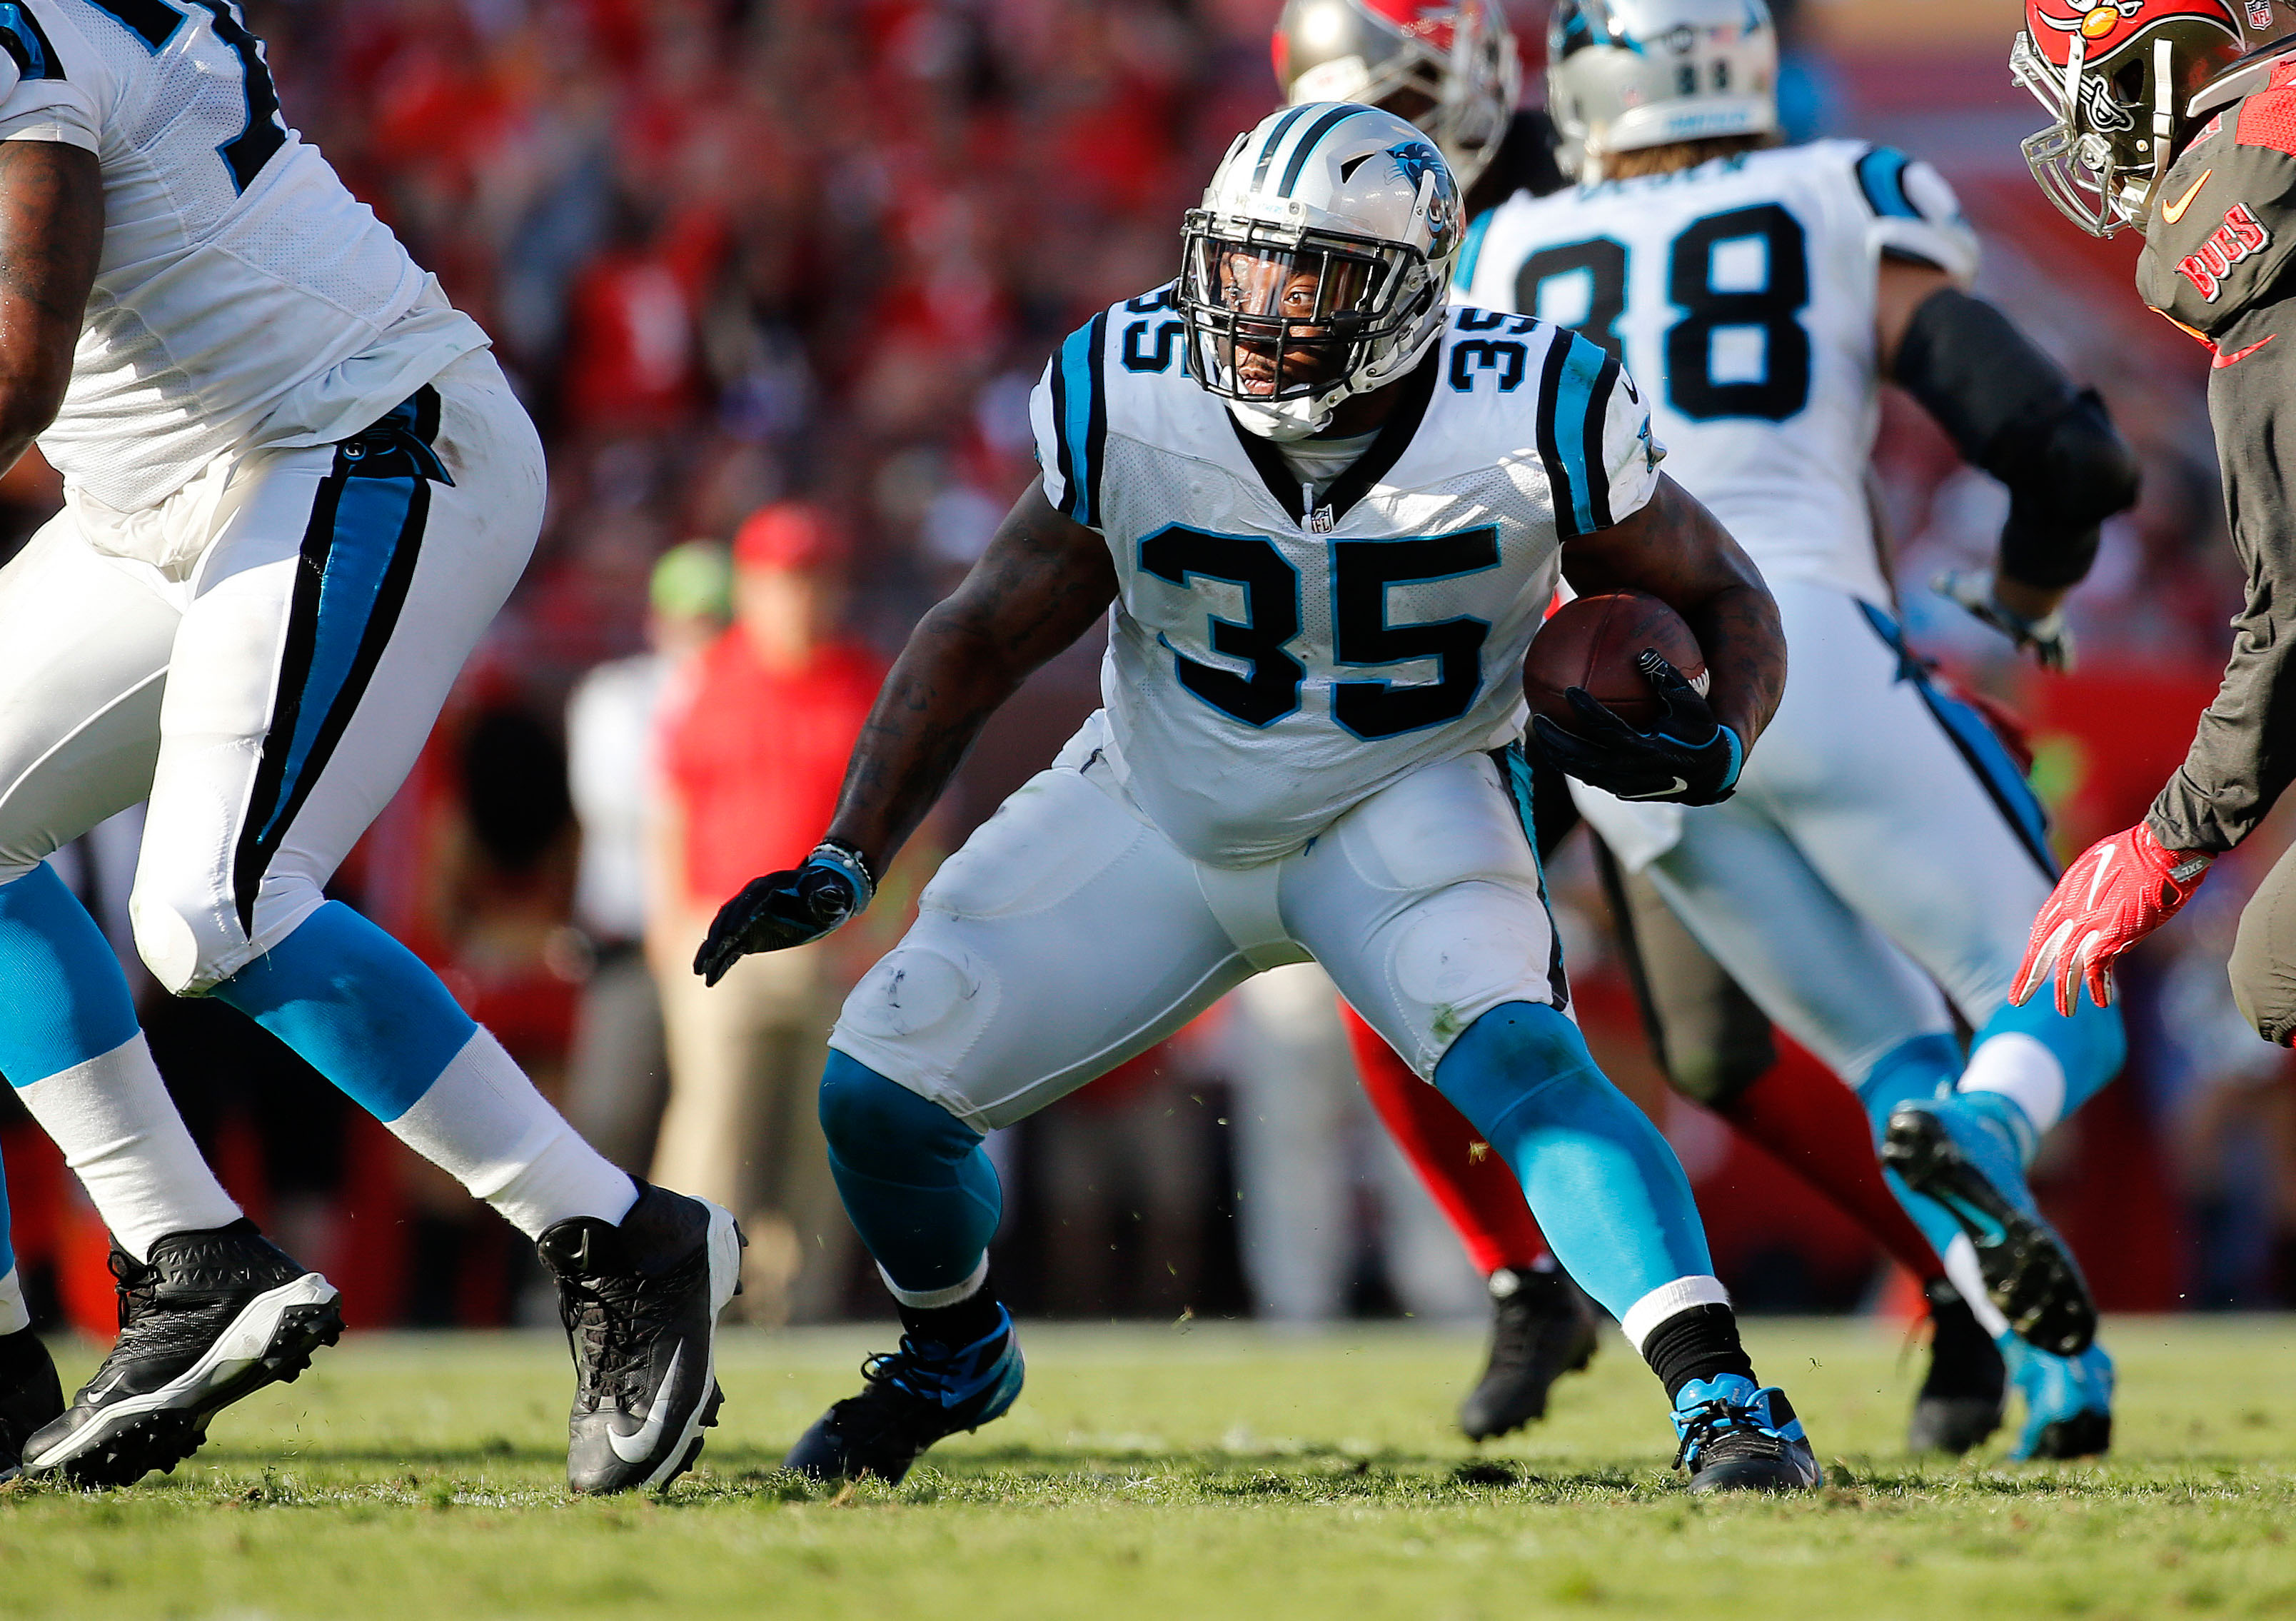 9839438-nfl-carolina-panthers-at-tampa-bay-buccaneers-1